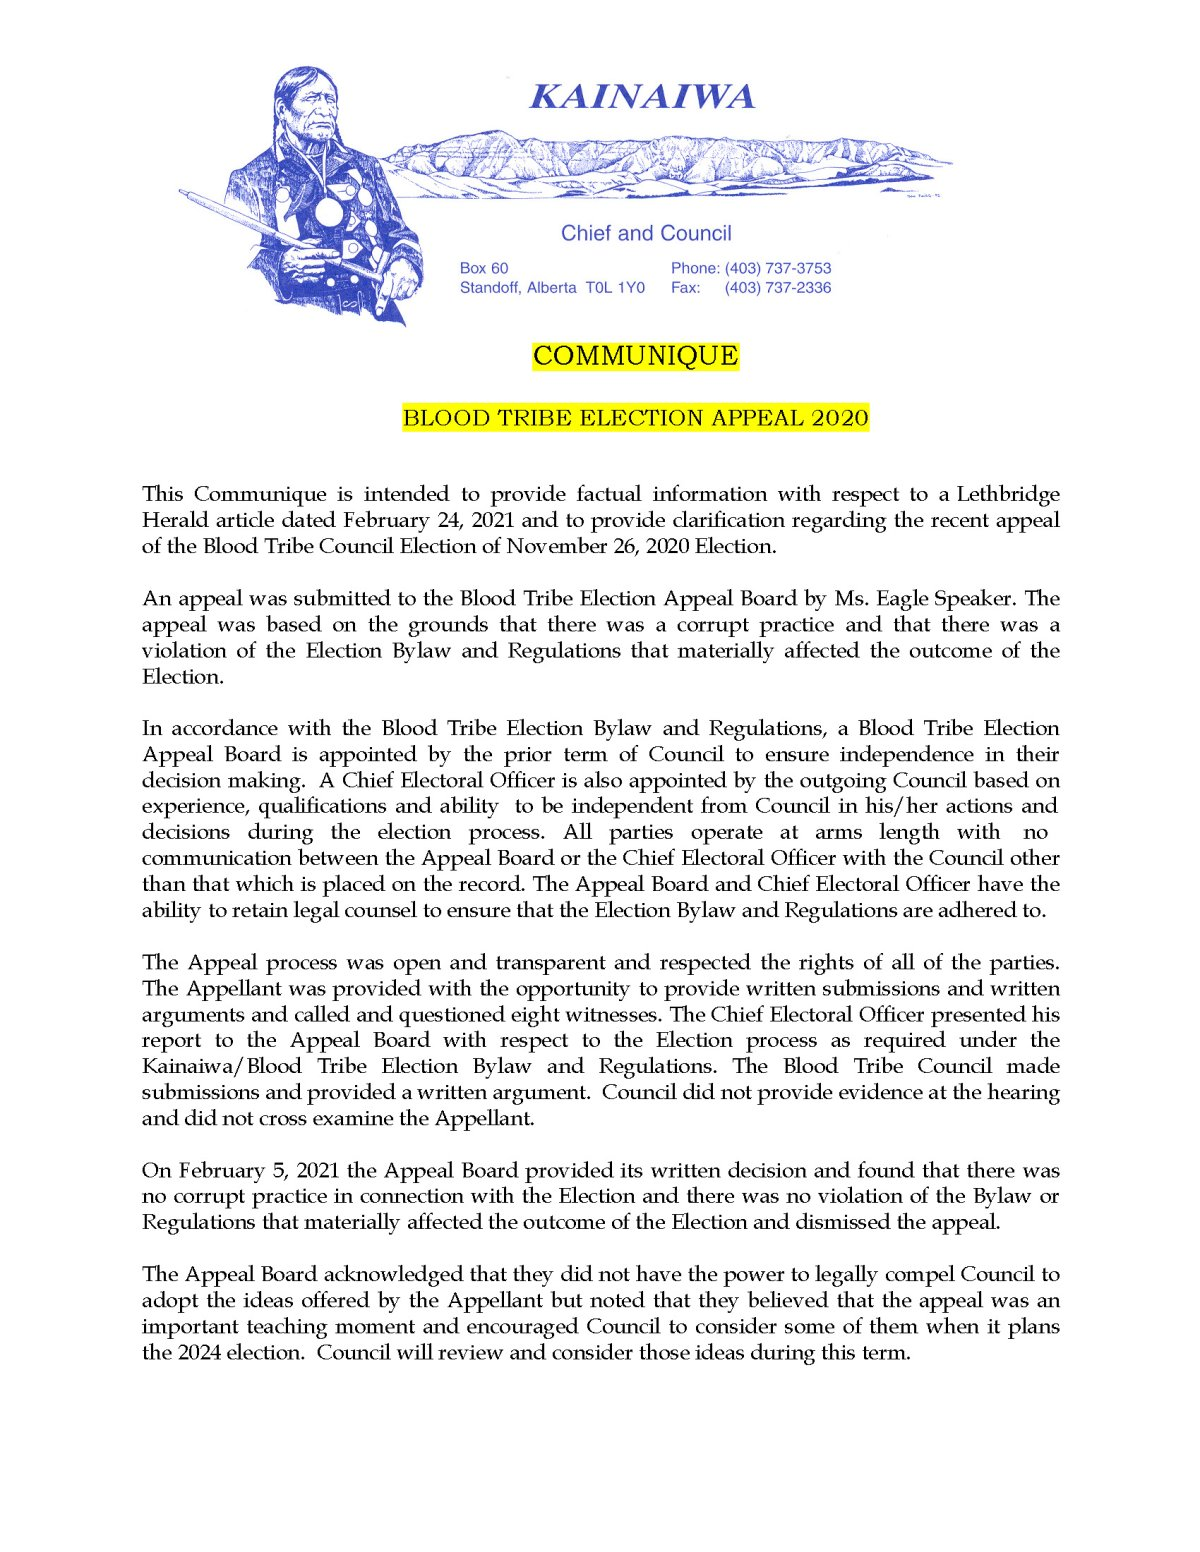 Communique Regarding The 2020 Blood Tribe Election Appeal – (February 25, 2021)